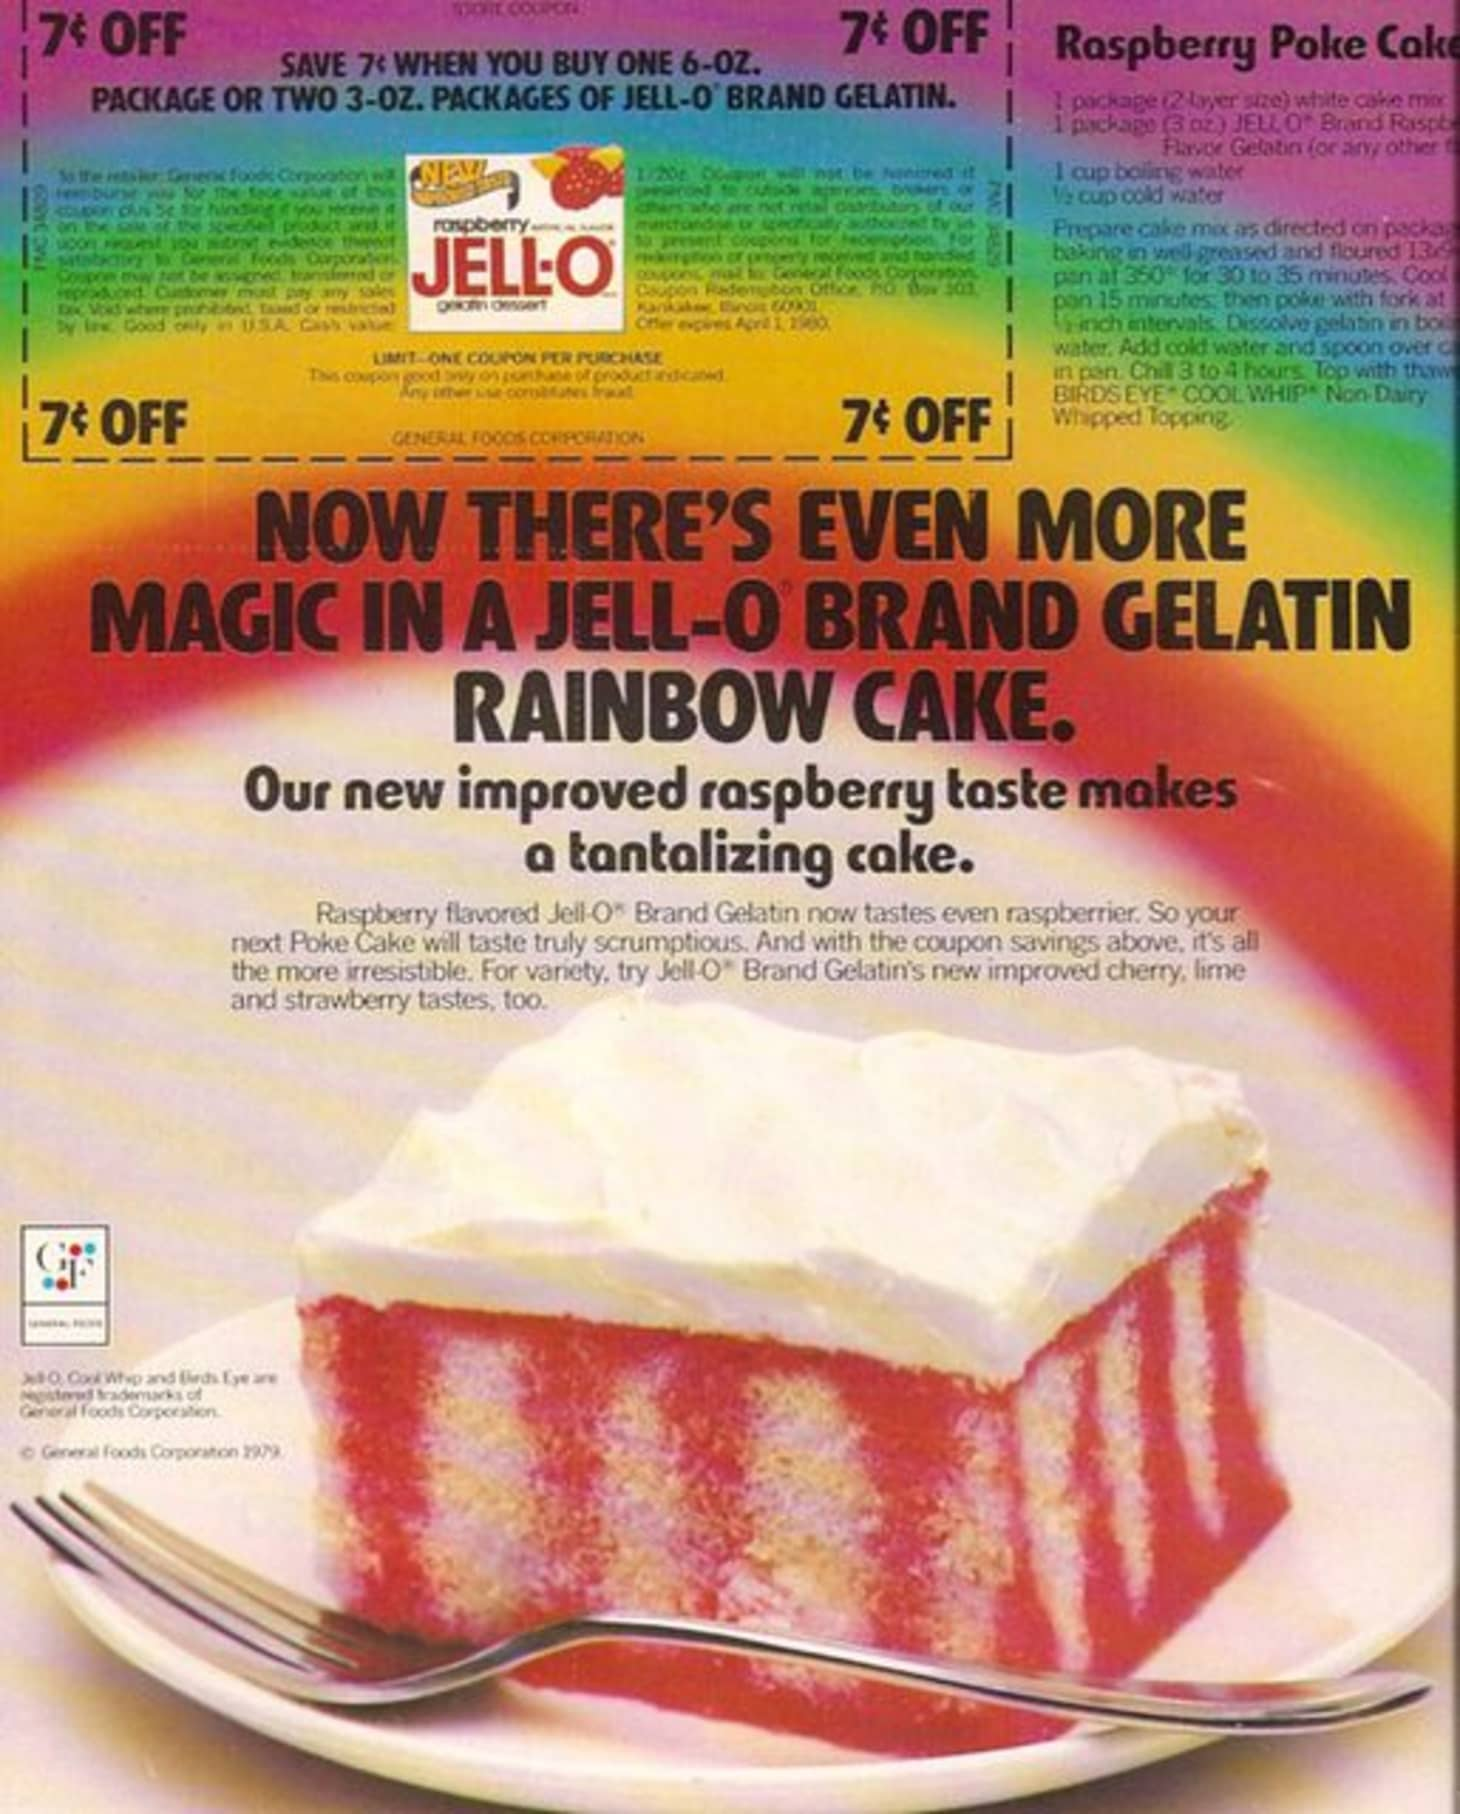 Poke Cakes Are Kitschy and Dated, but Still a Heck of a Lot